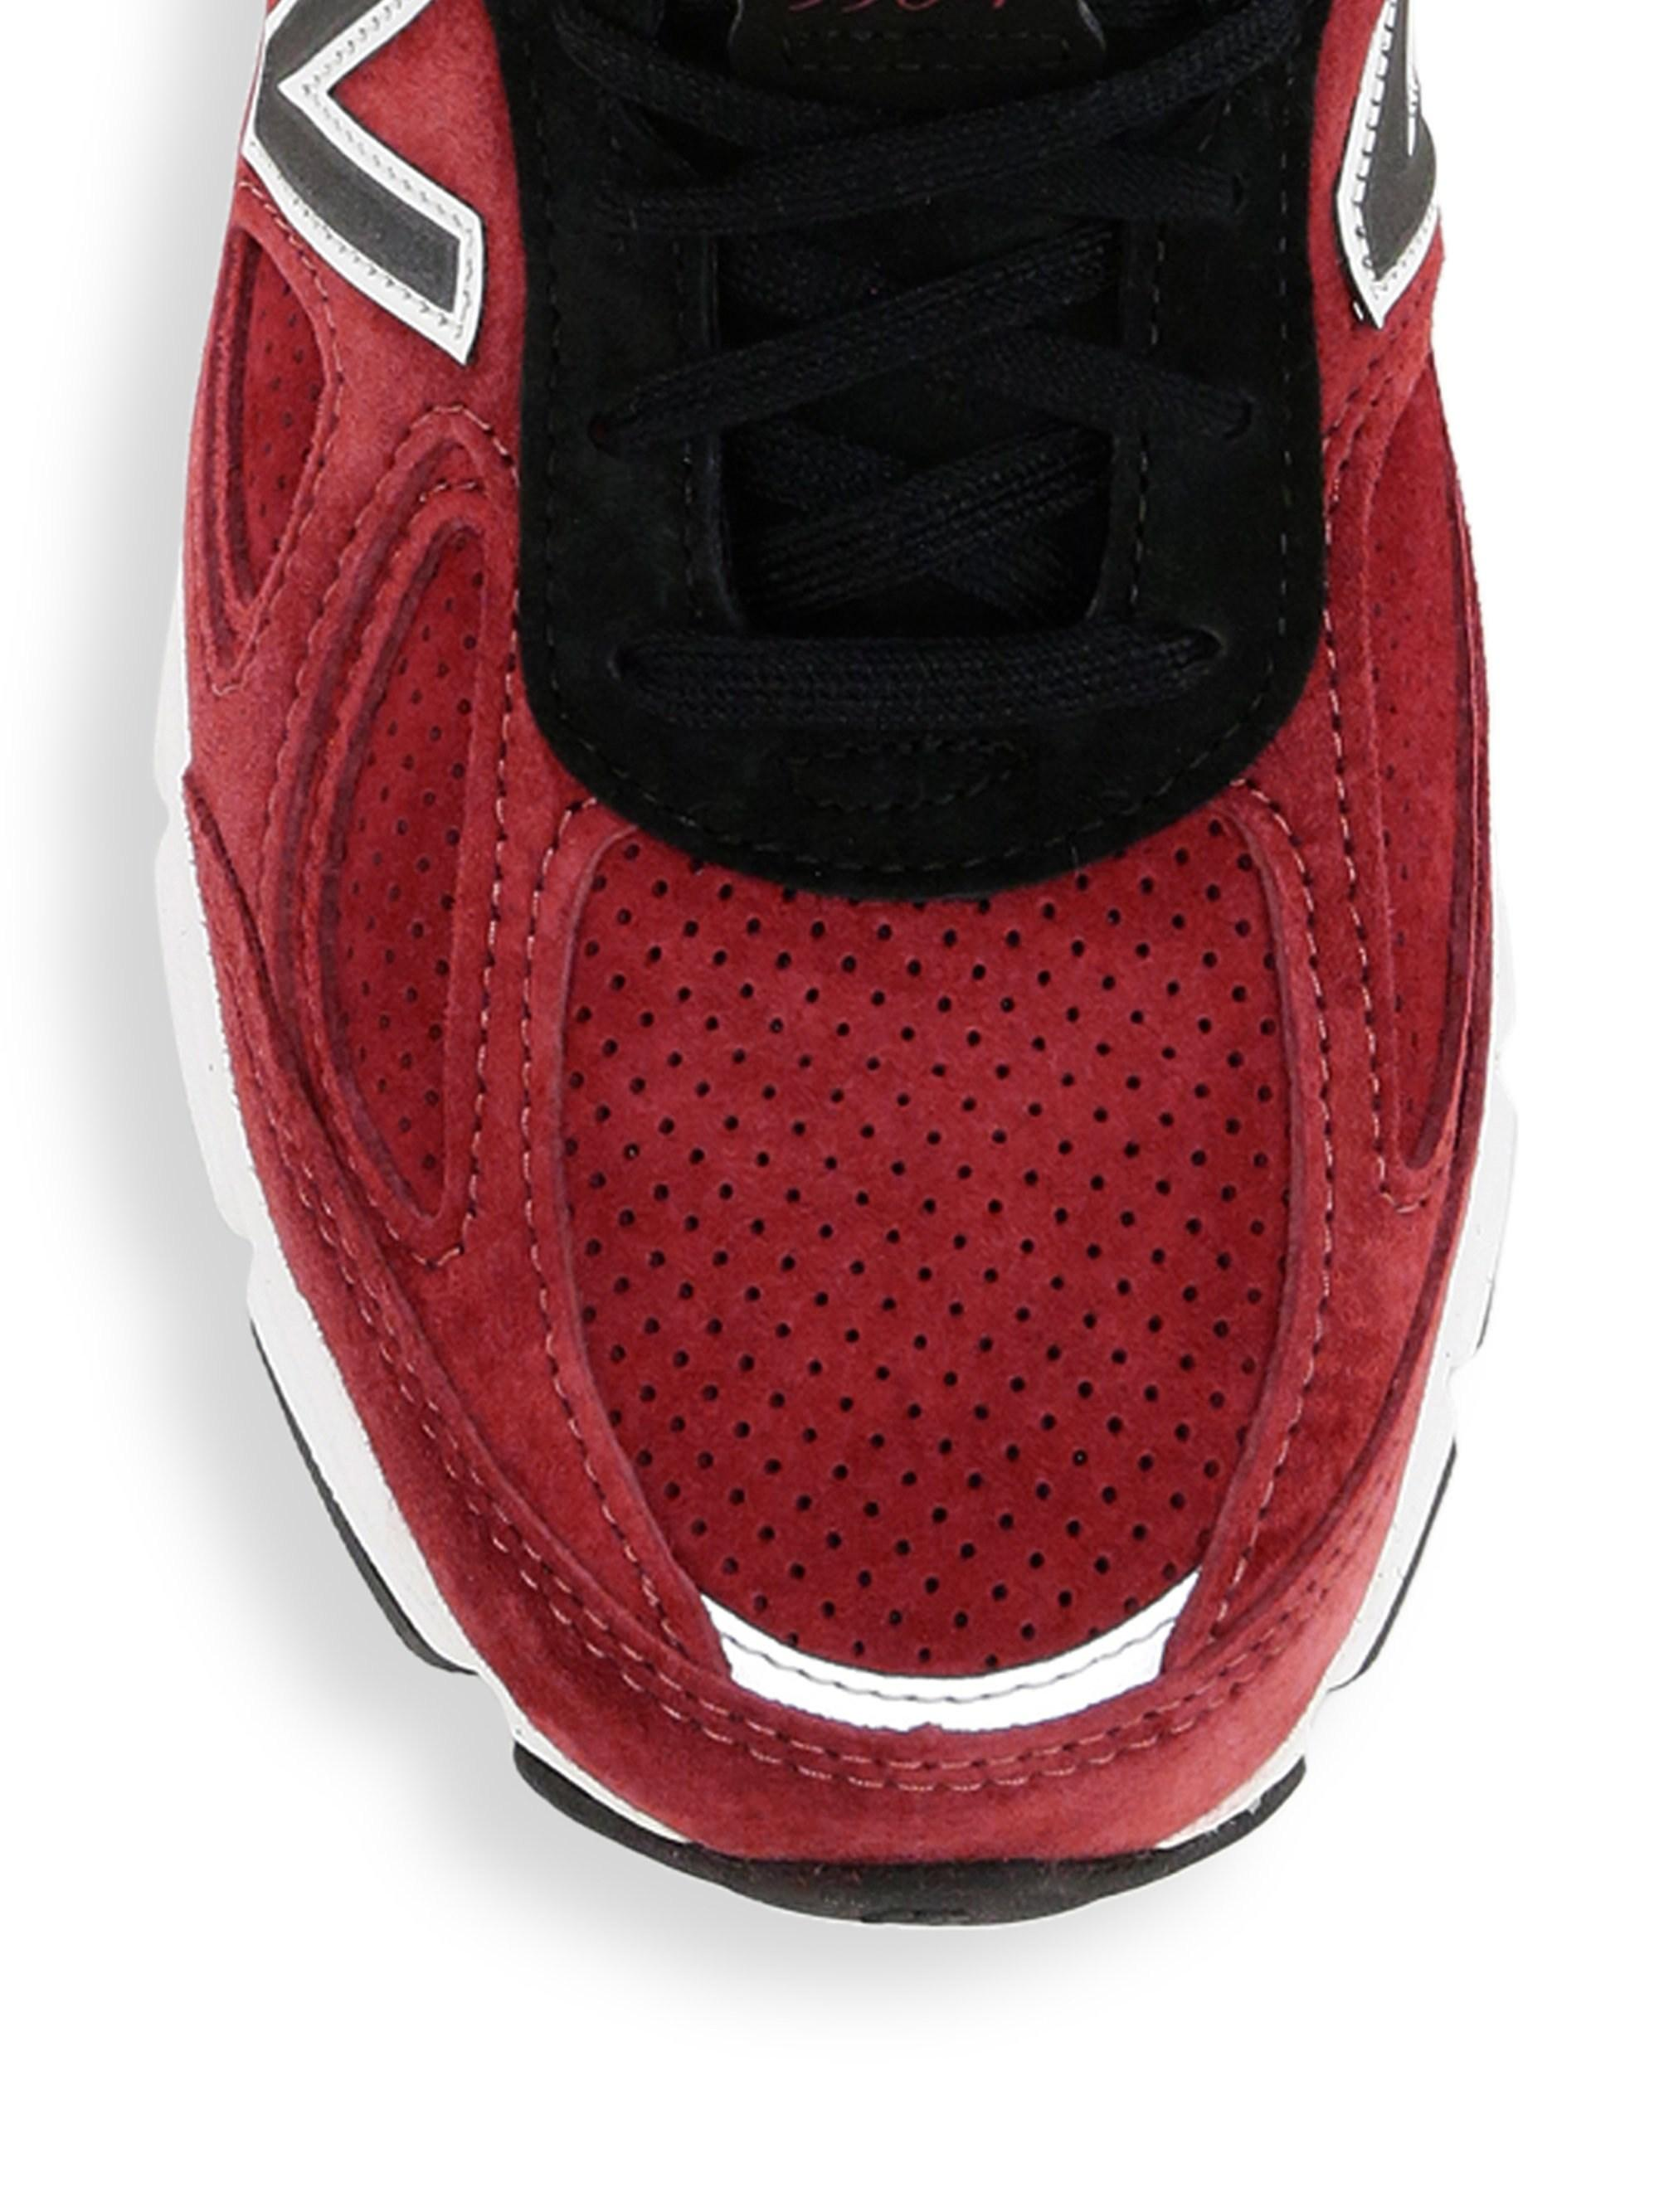 best authentic e82cb 05dc4 New Balance - Men s 990v4 Made In Usa Suede Sneakers - Mercury Red for Men  -. View fullscreen